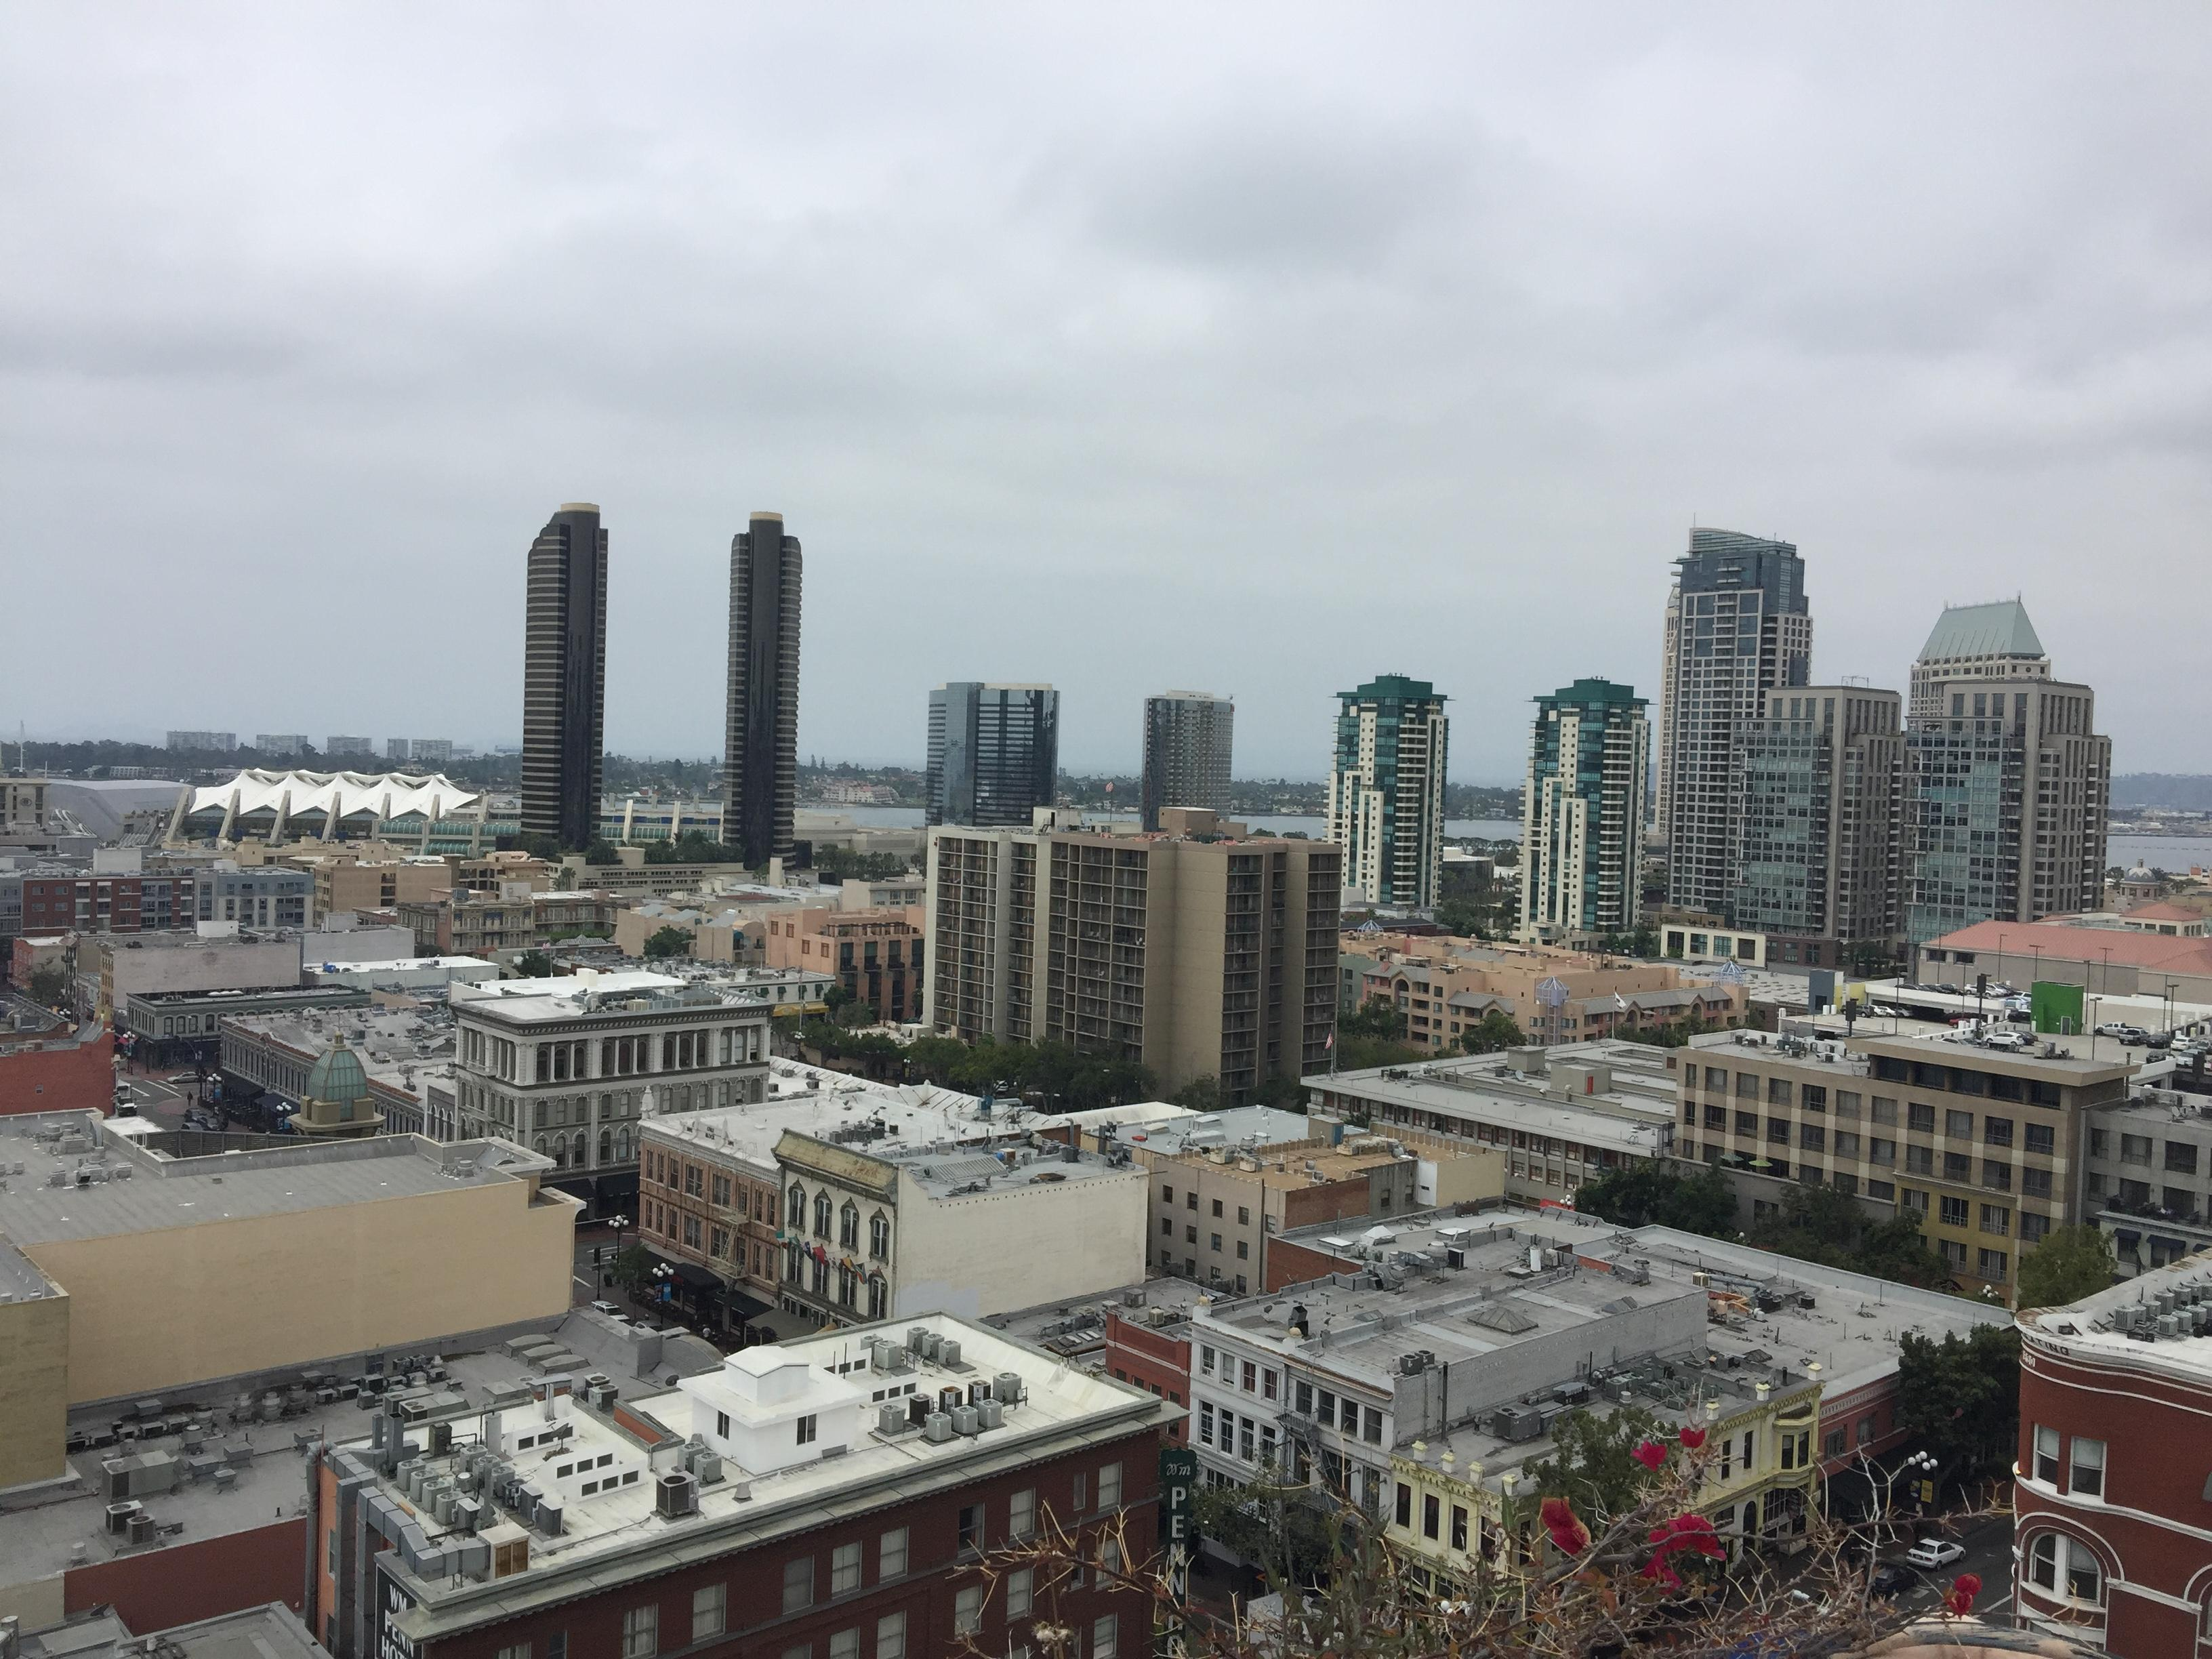 San Diego Convention Center and Gas Lamp District